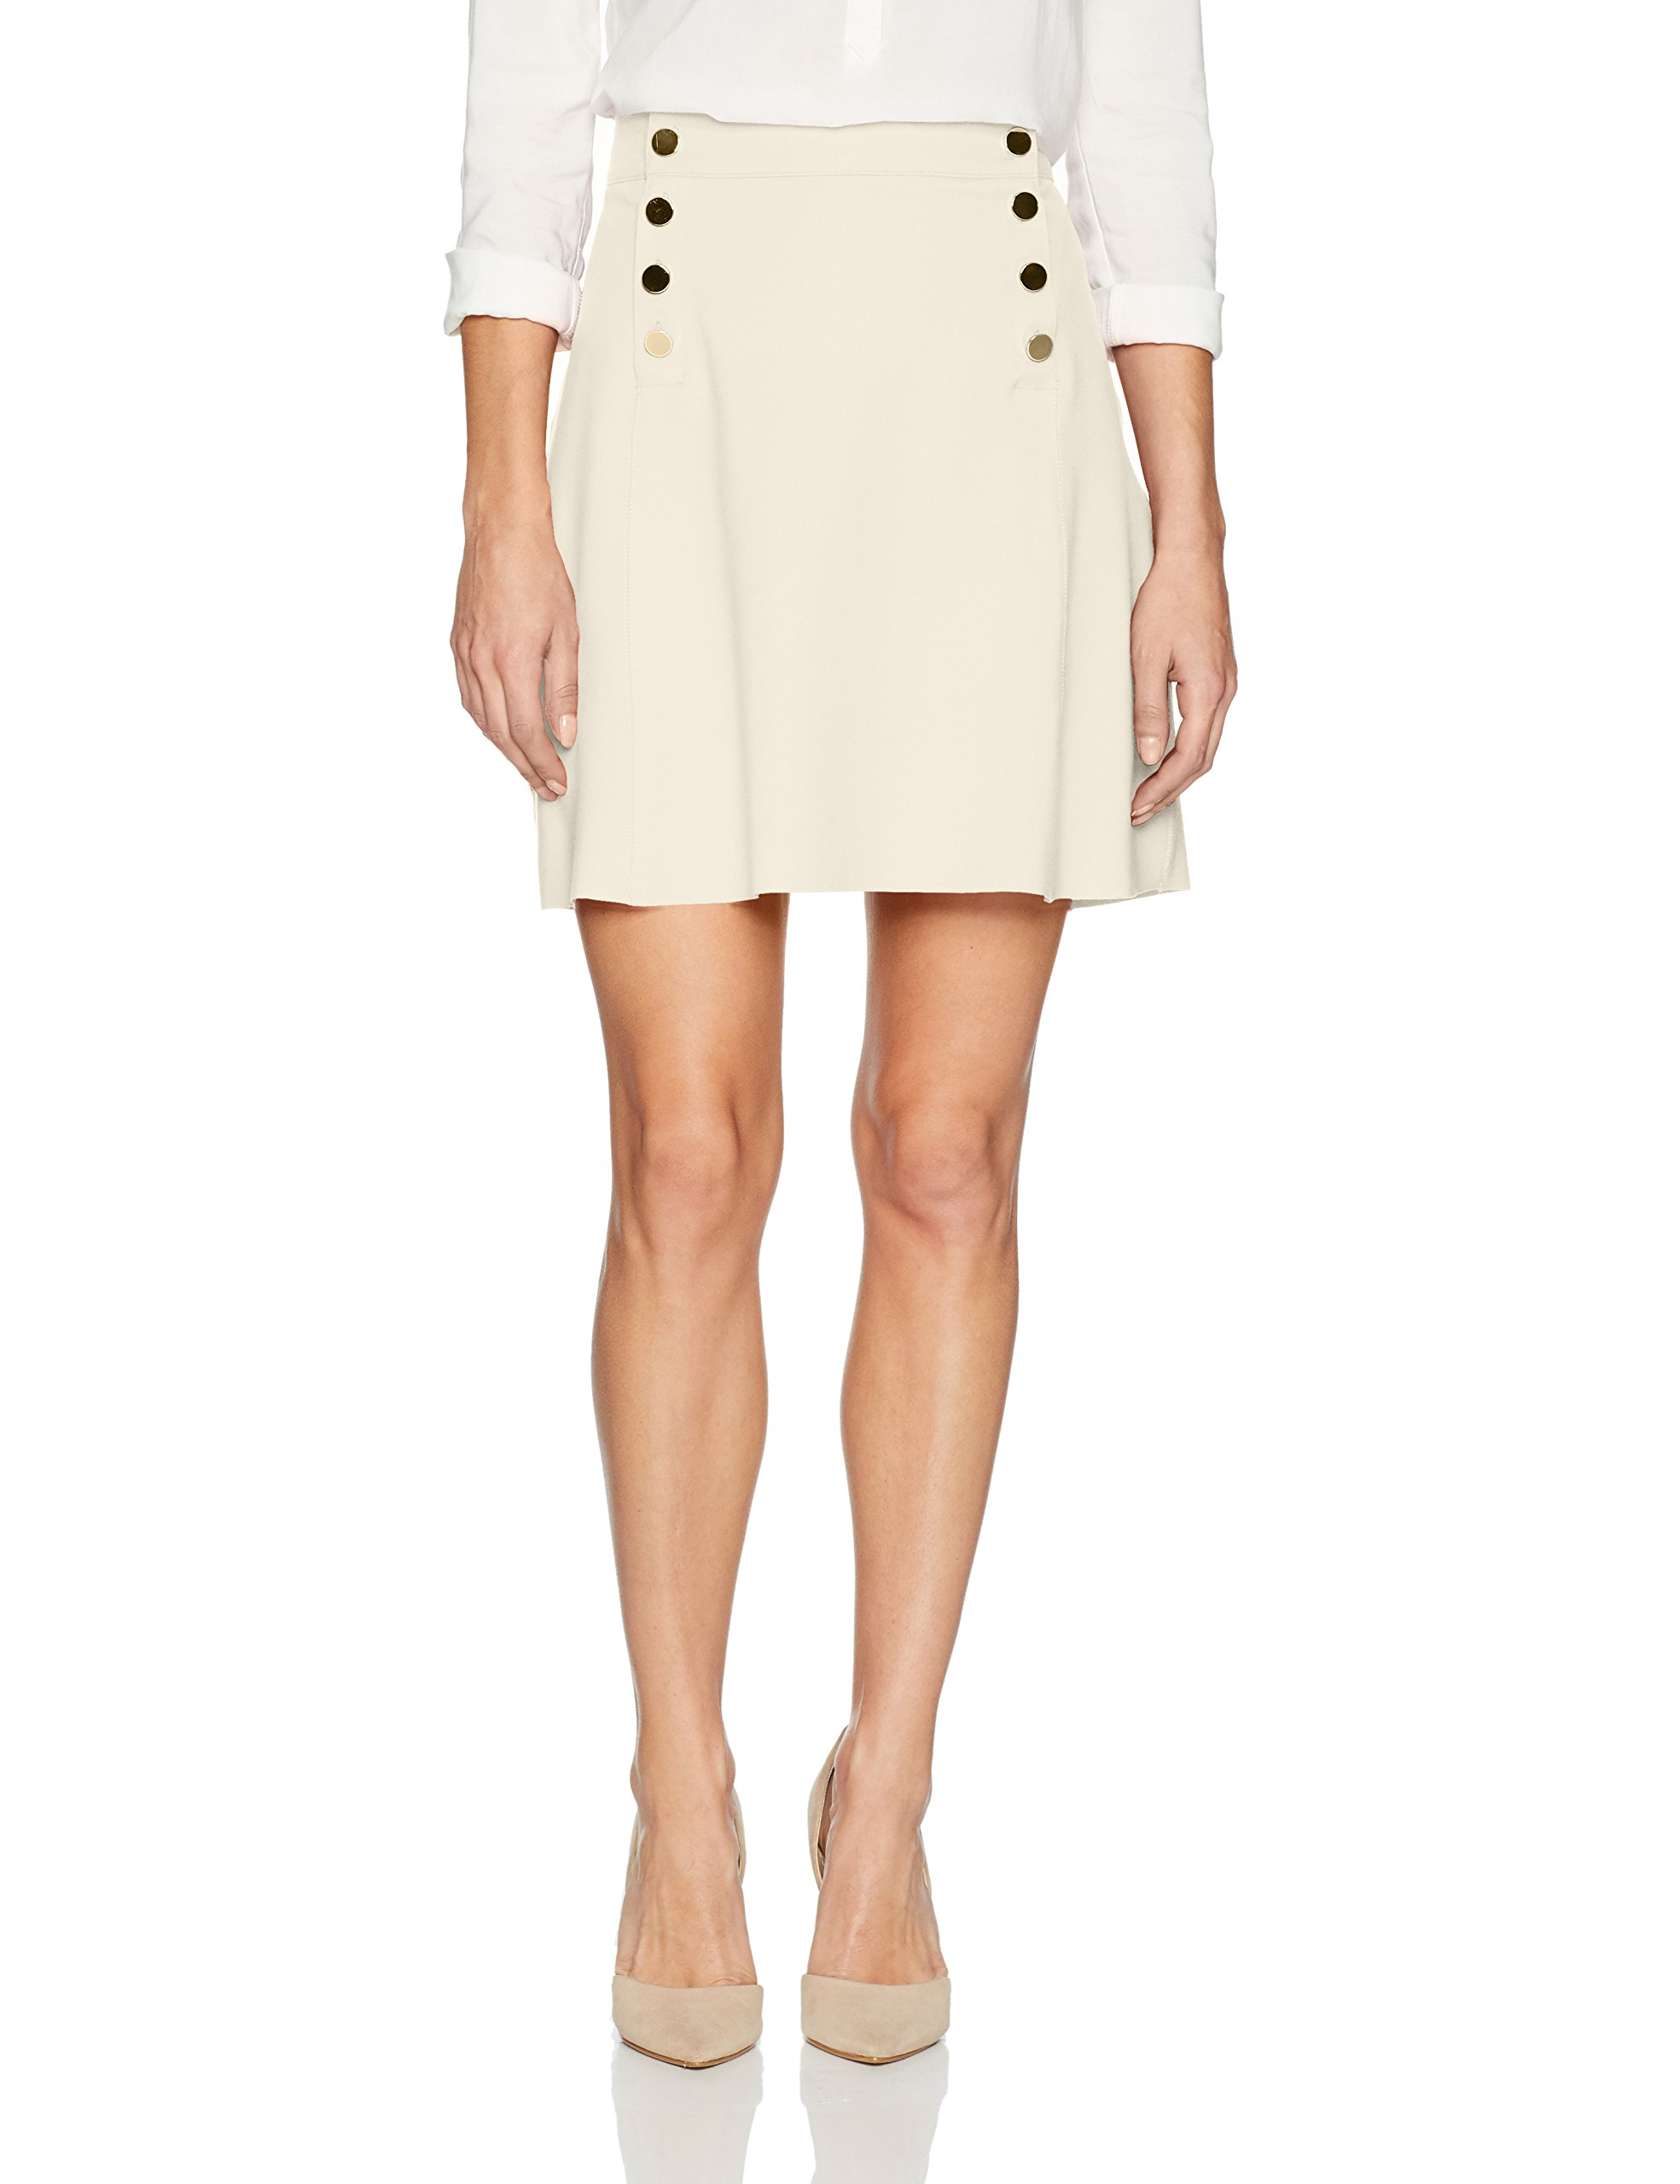 Three Dots Women's Ponte a-Line Loose Short Skirt, Off White, Xtra Small